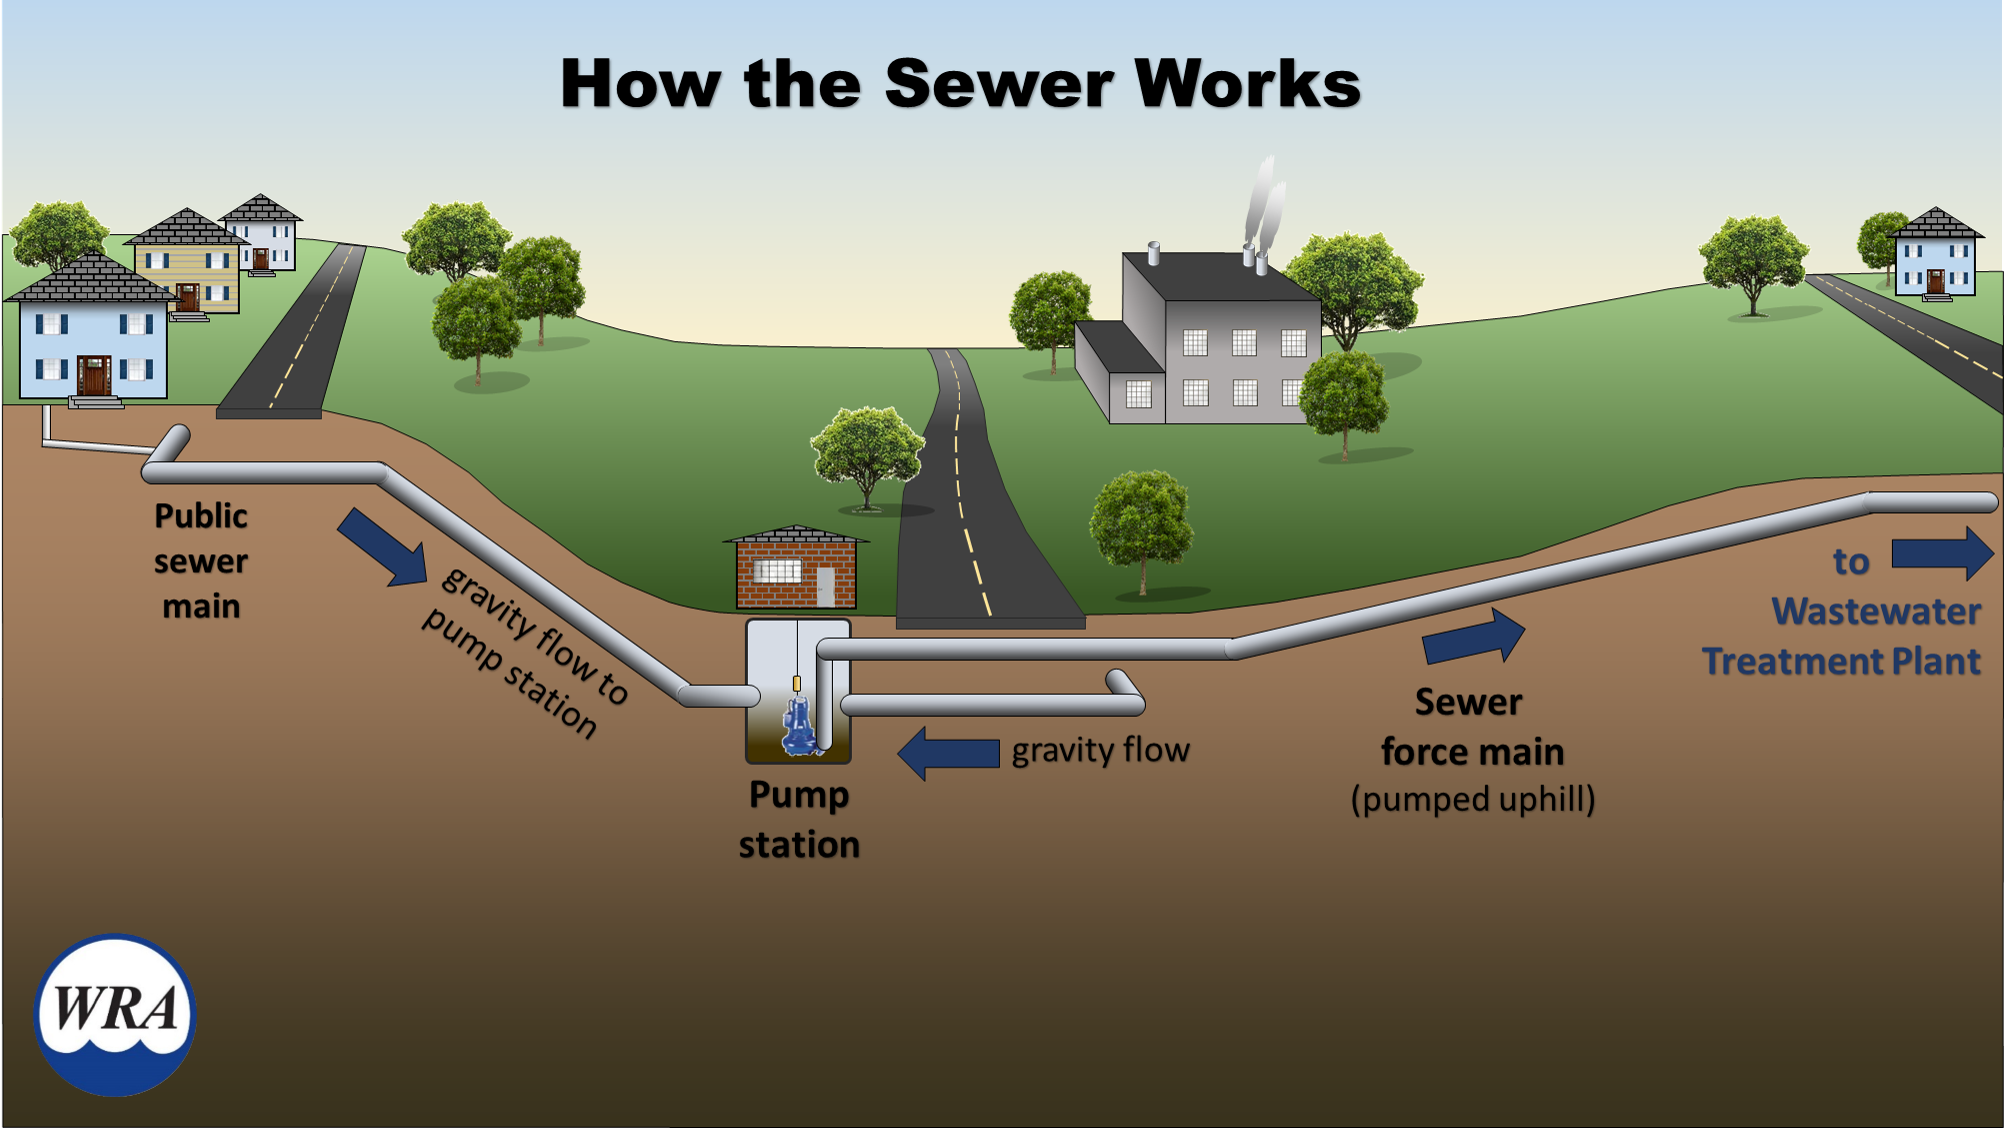 A cross-sectional diagram of how the sewer works.